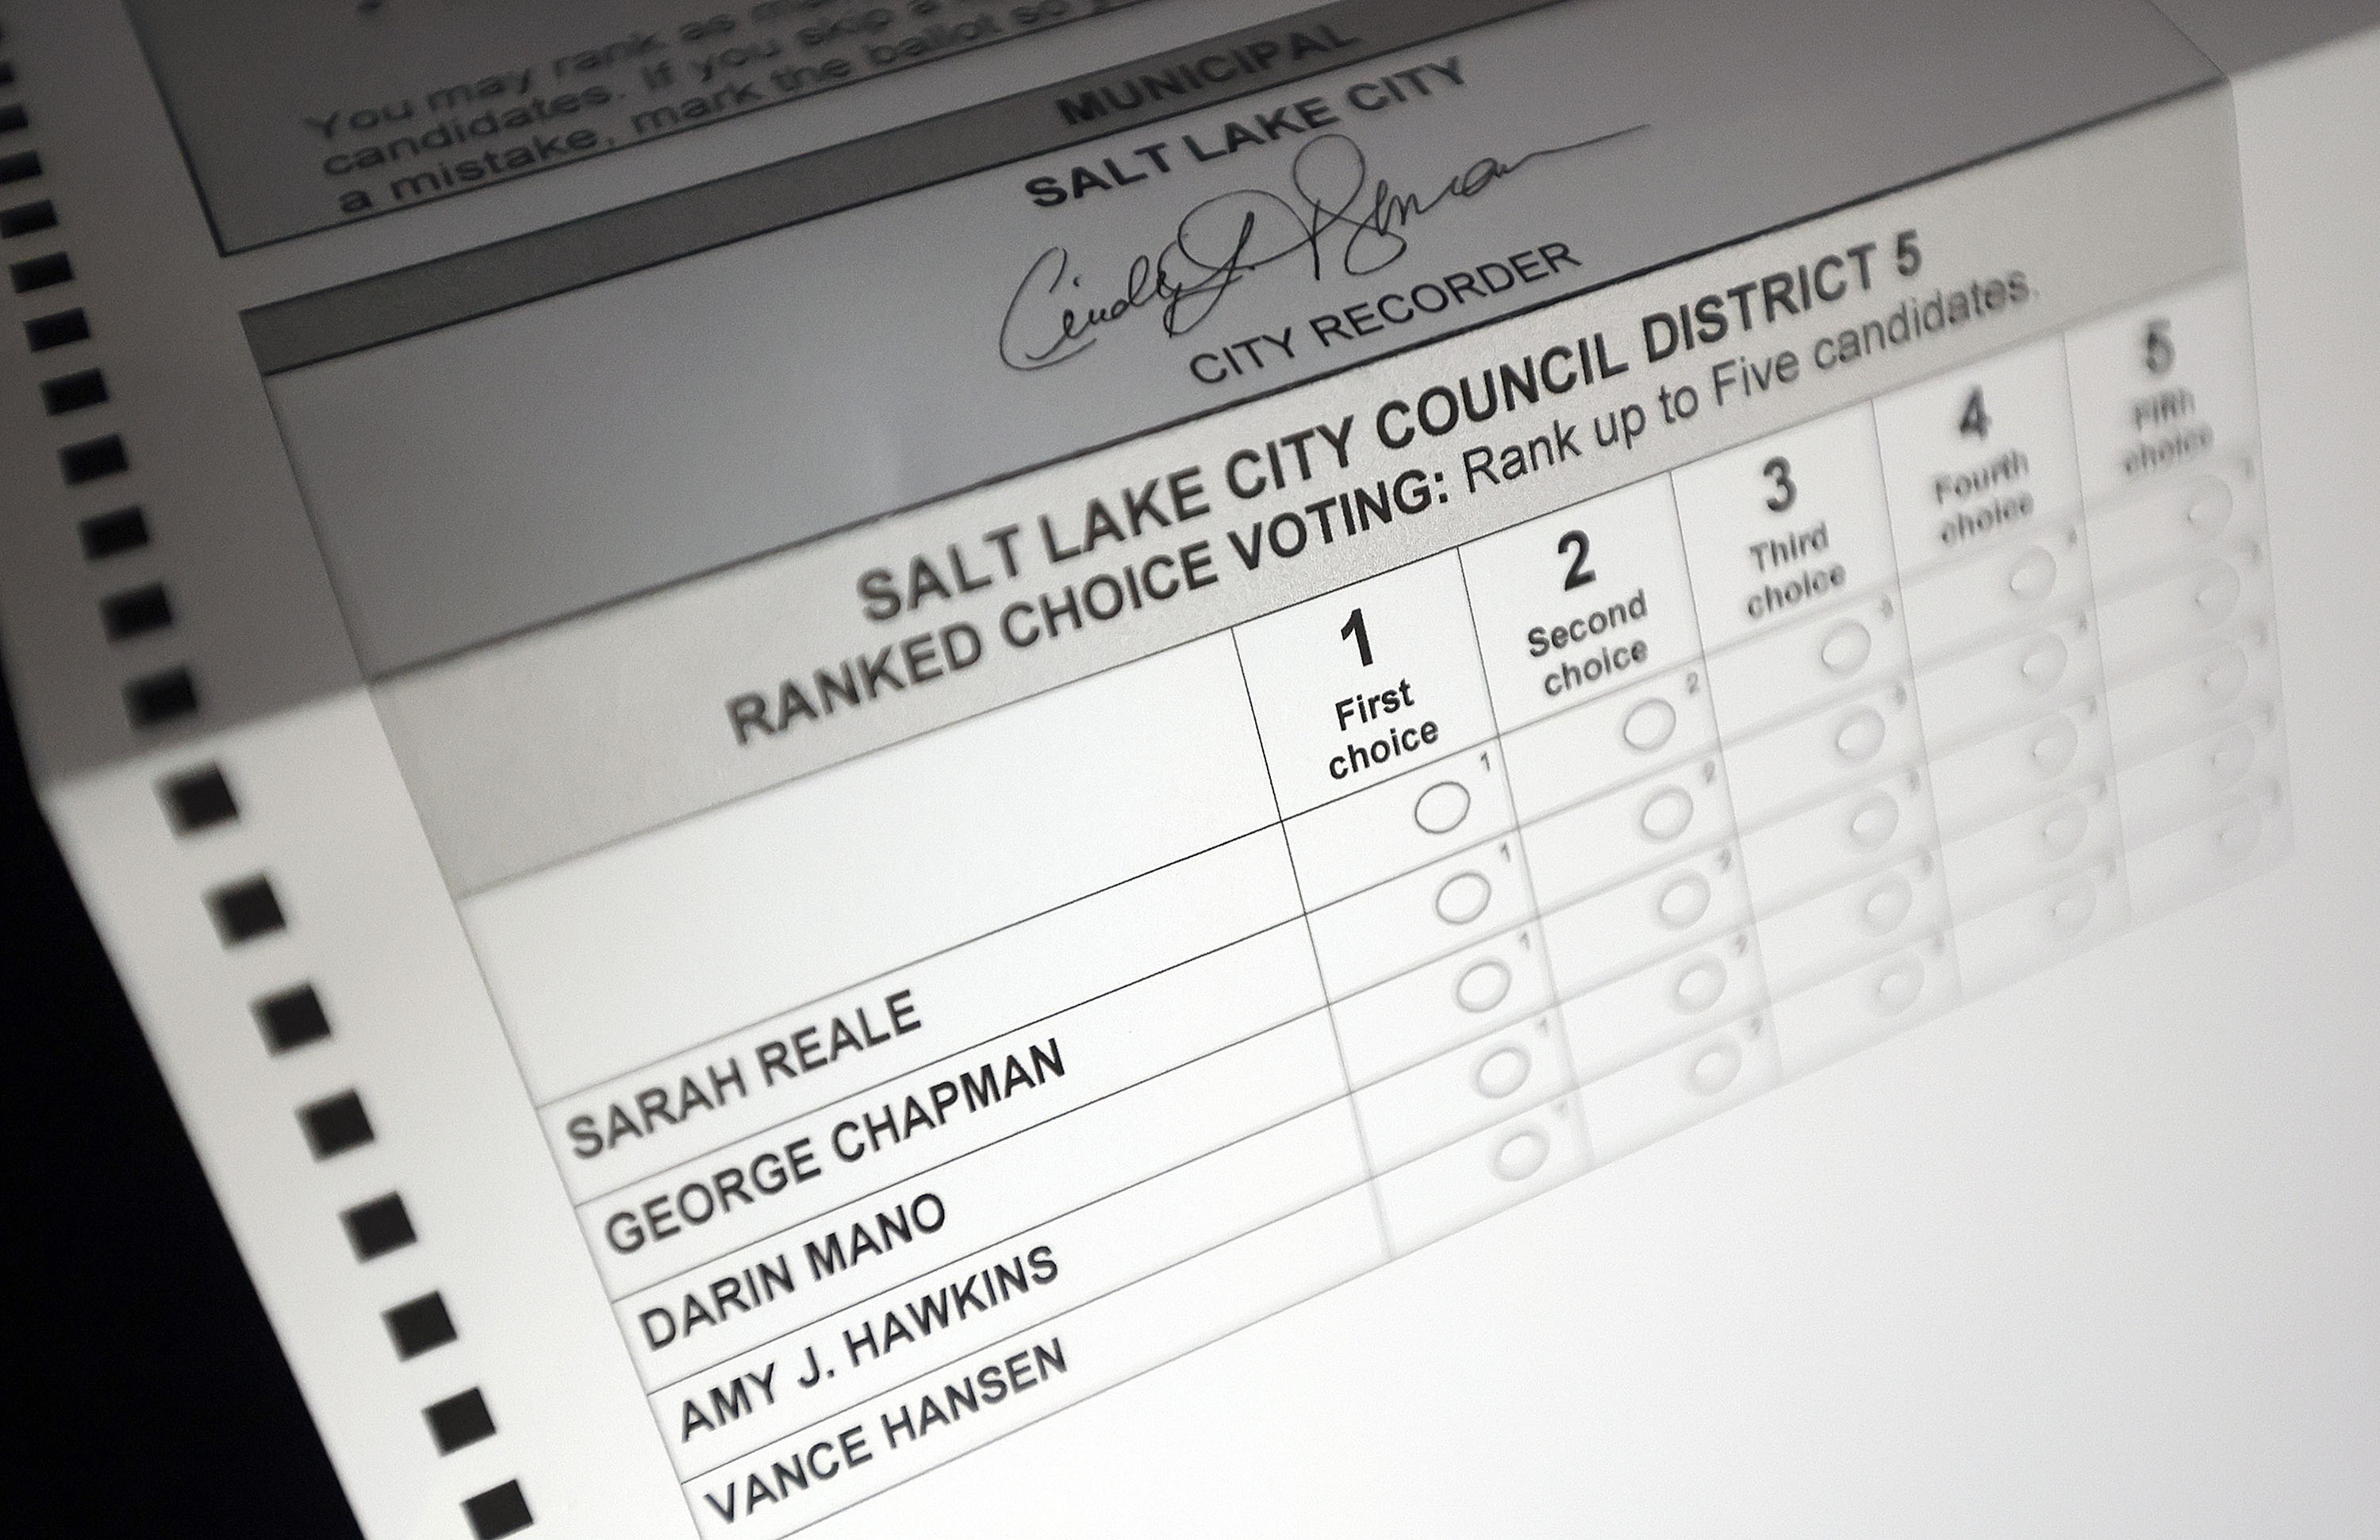 A Salt Lake City Council ballot with ranking options is pictured in Salt Lake City on Friday, Oct. 15, 2021.